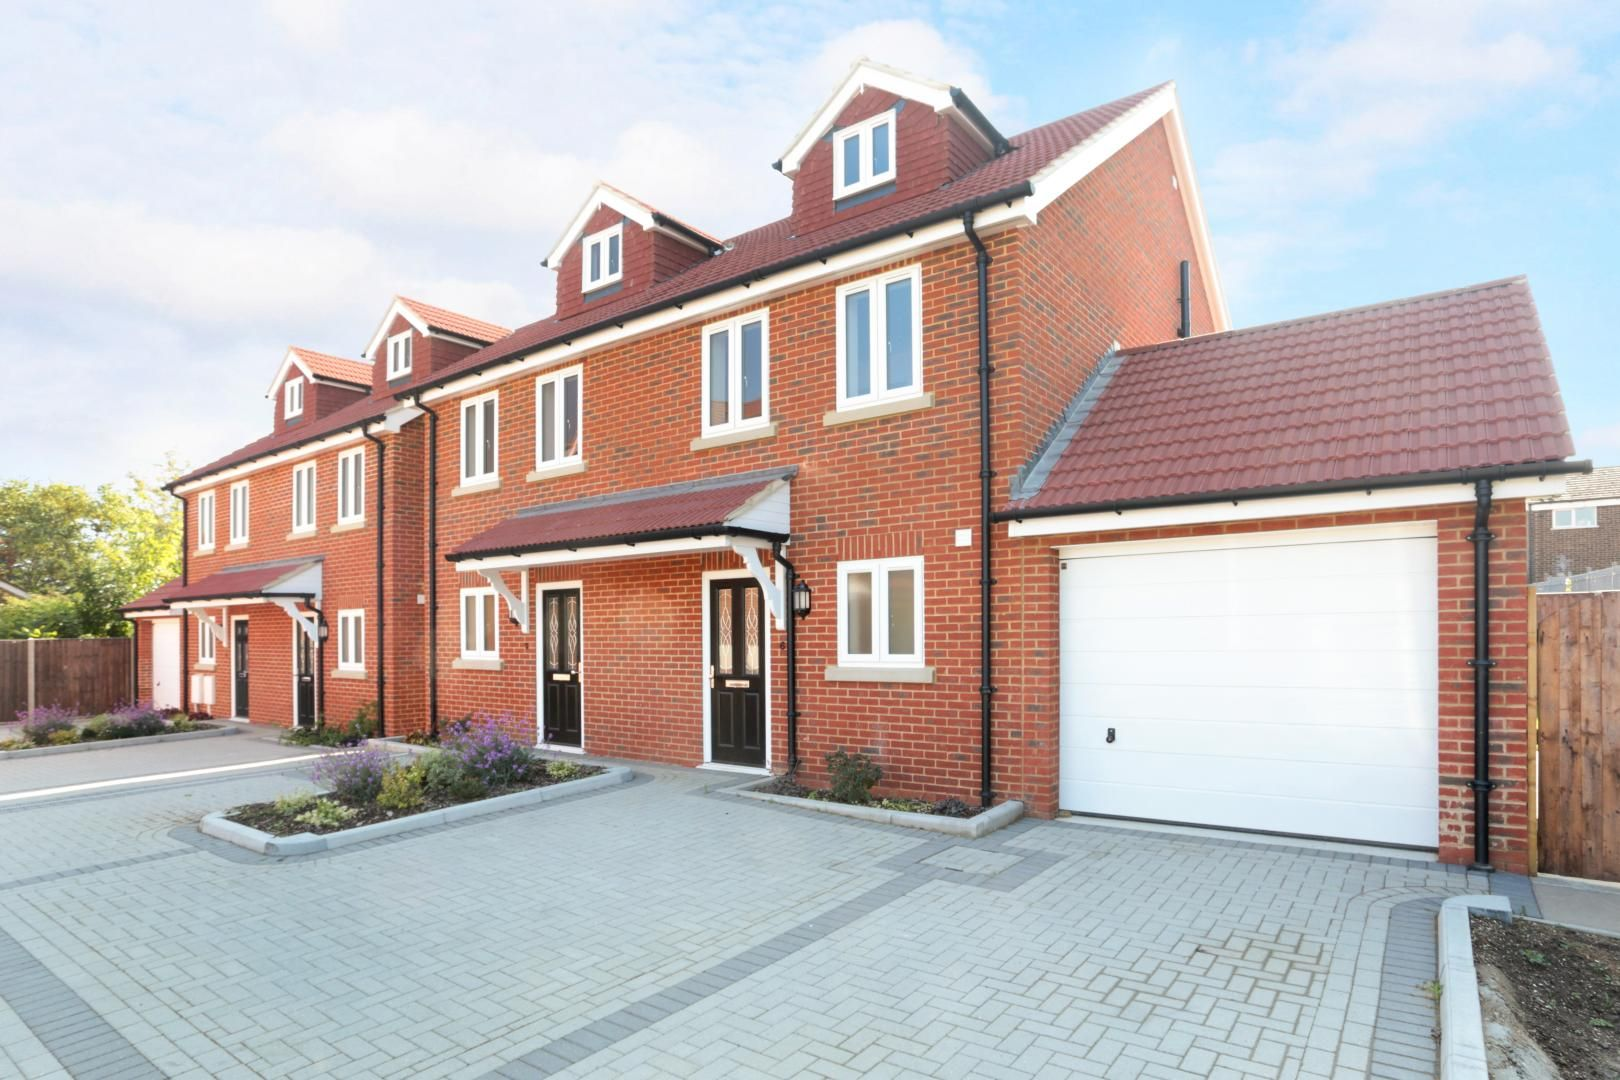 3 bed house for sale in Zara Court  - Property Image 1